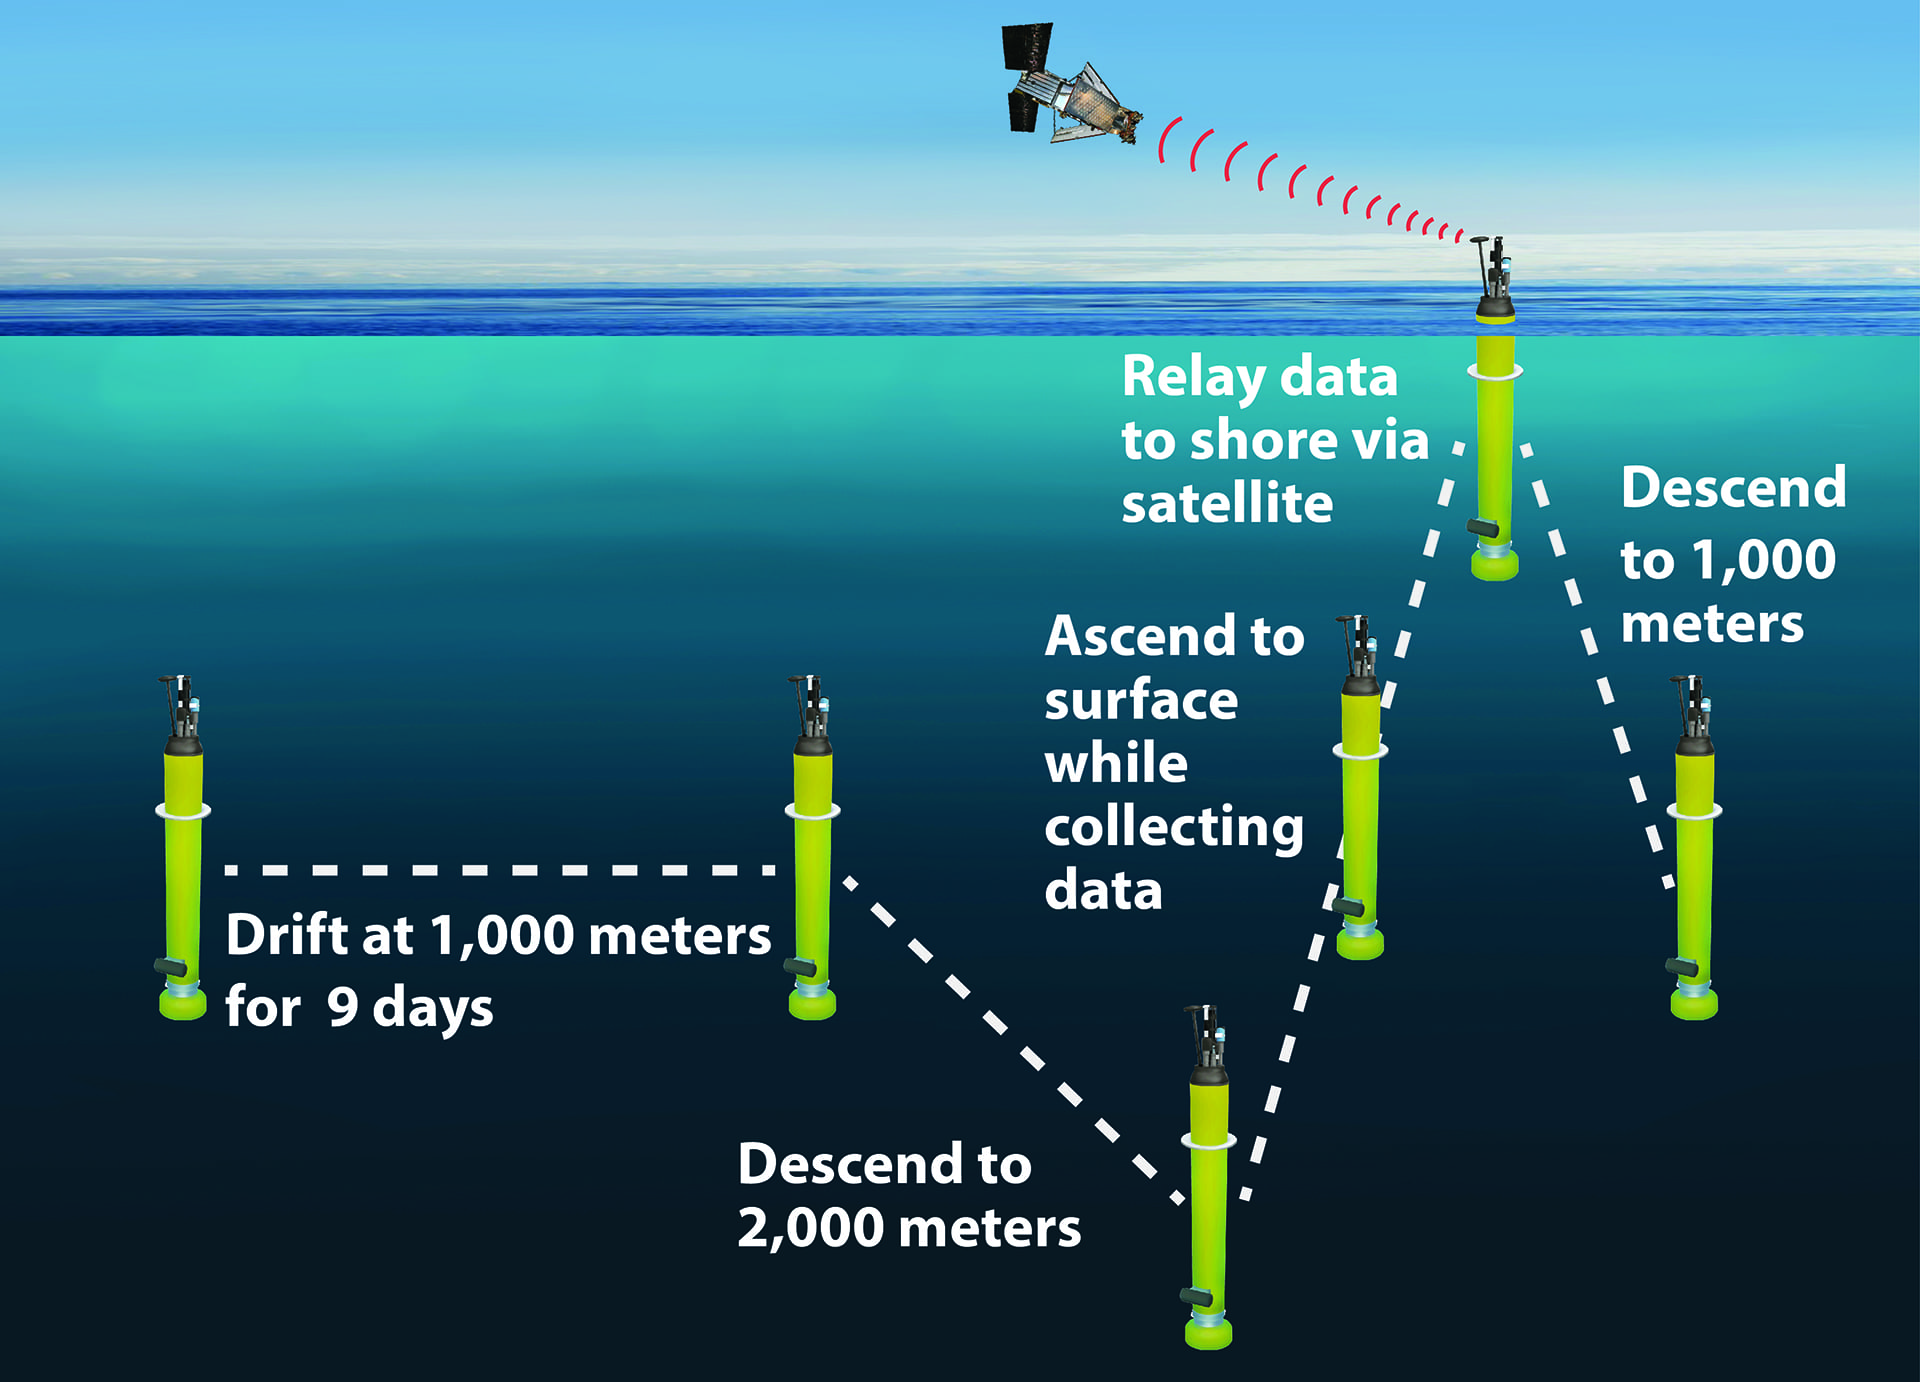 Illustration showing the operation of a typical Argo profiling float. (Image by Kim Fulton-Bennett, © 2020 MBARI)